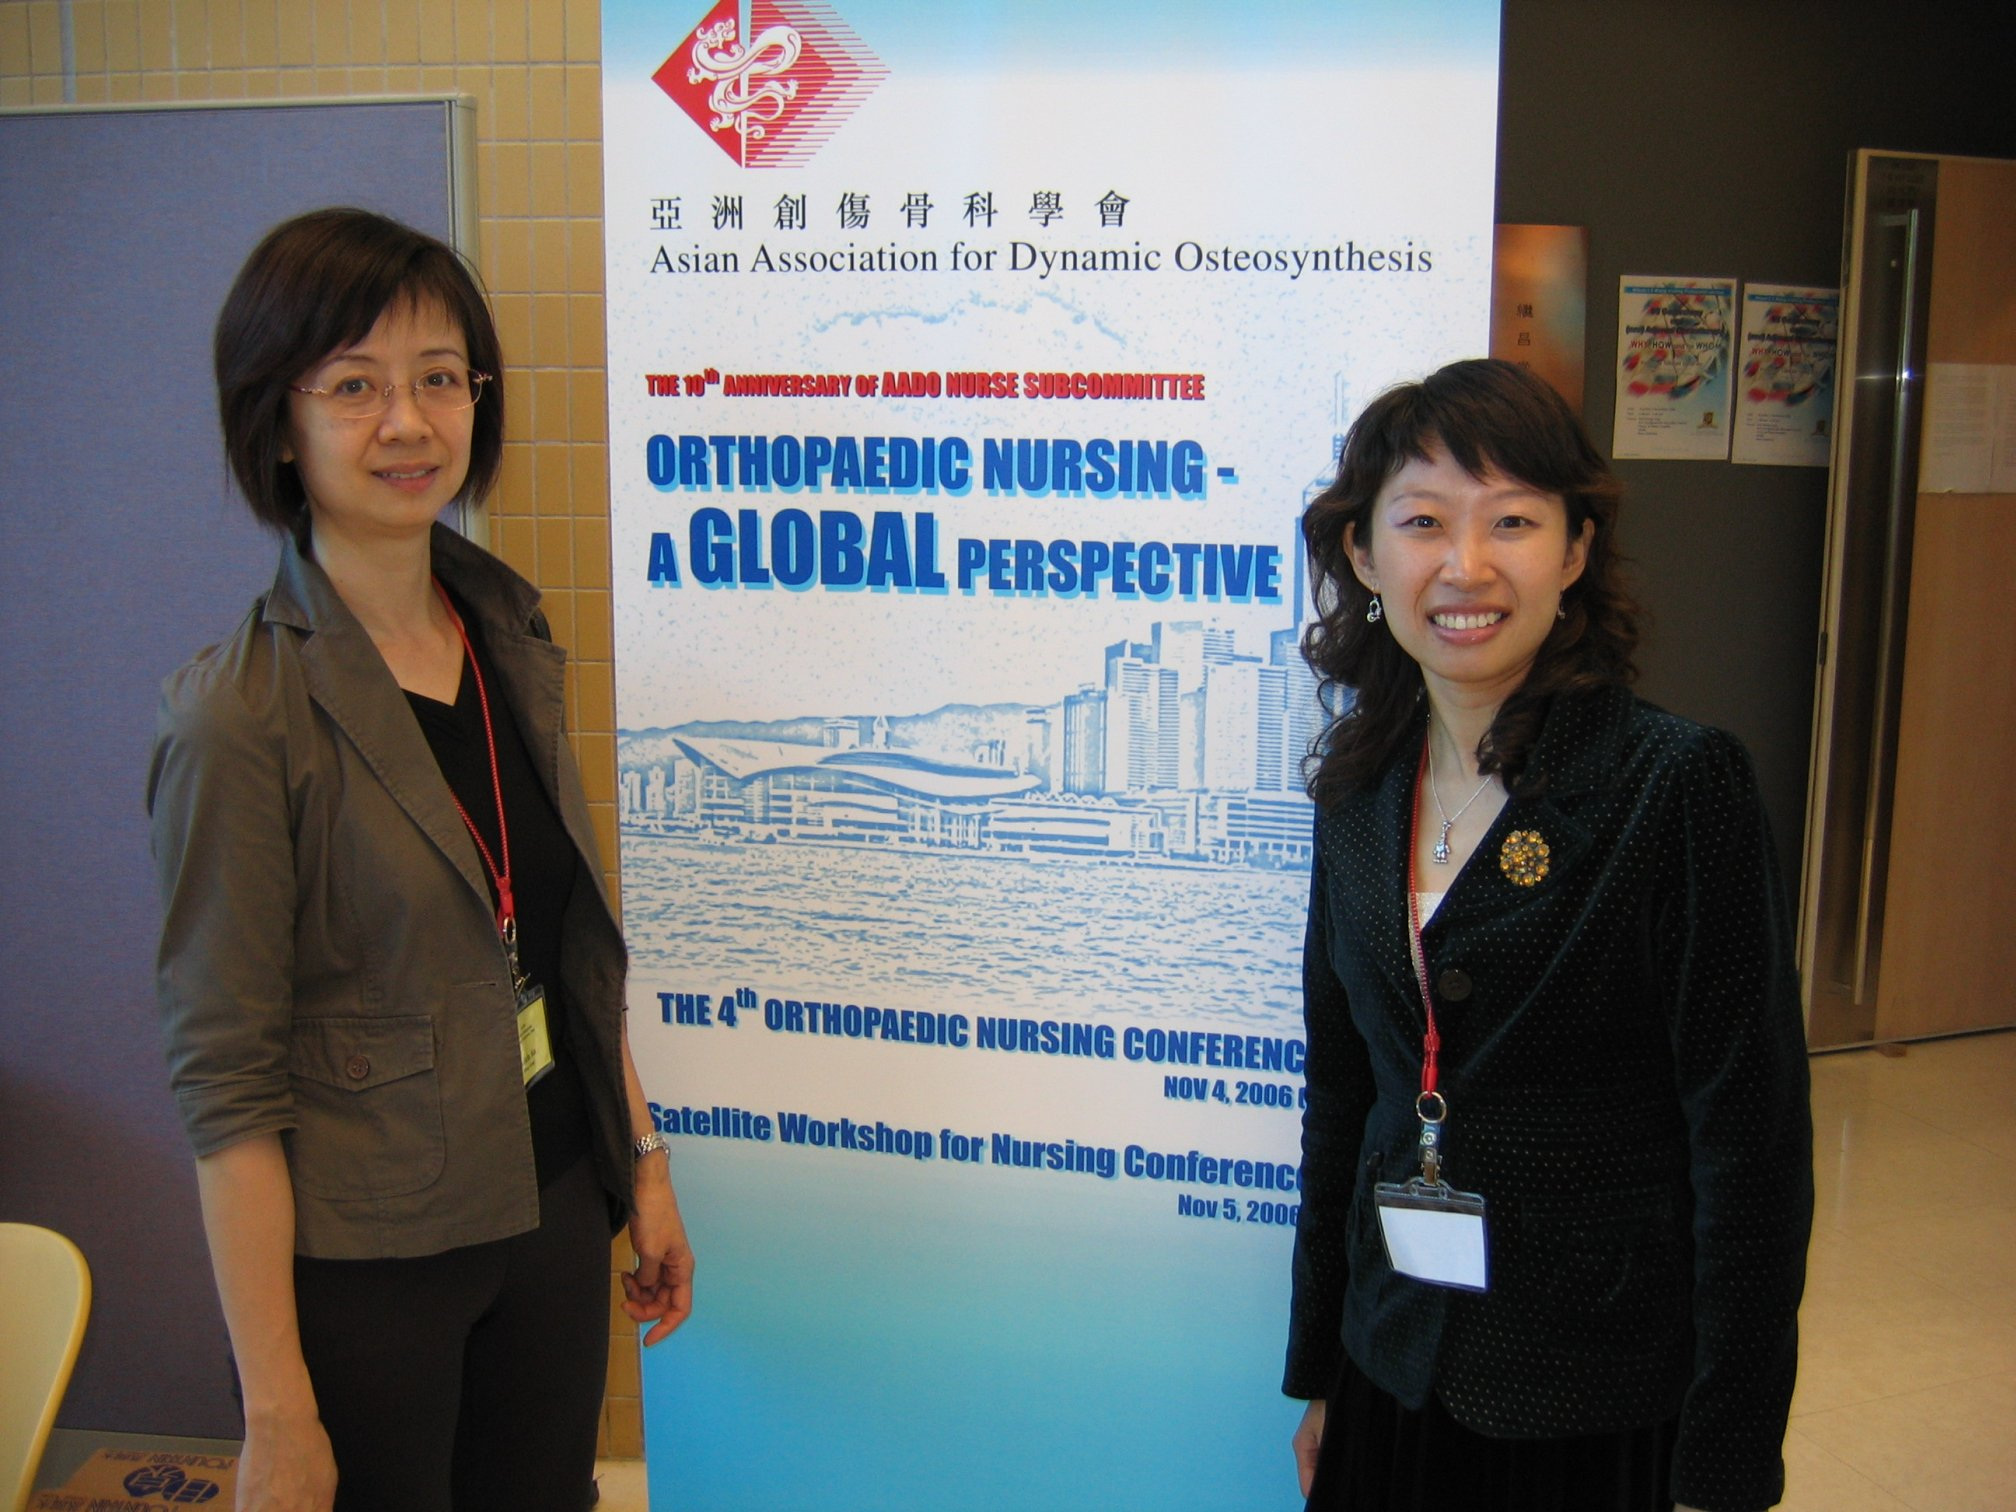 asian association for dynamic osteosynthesis